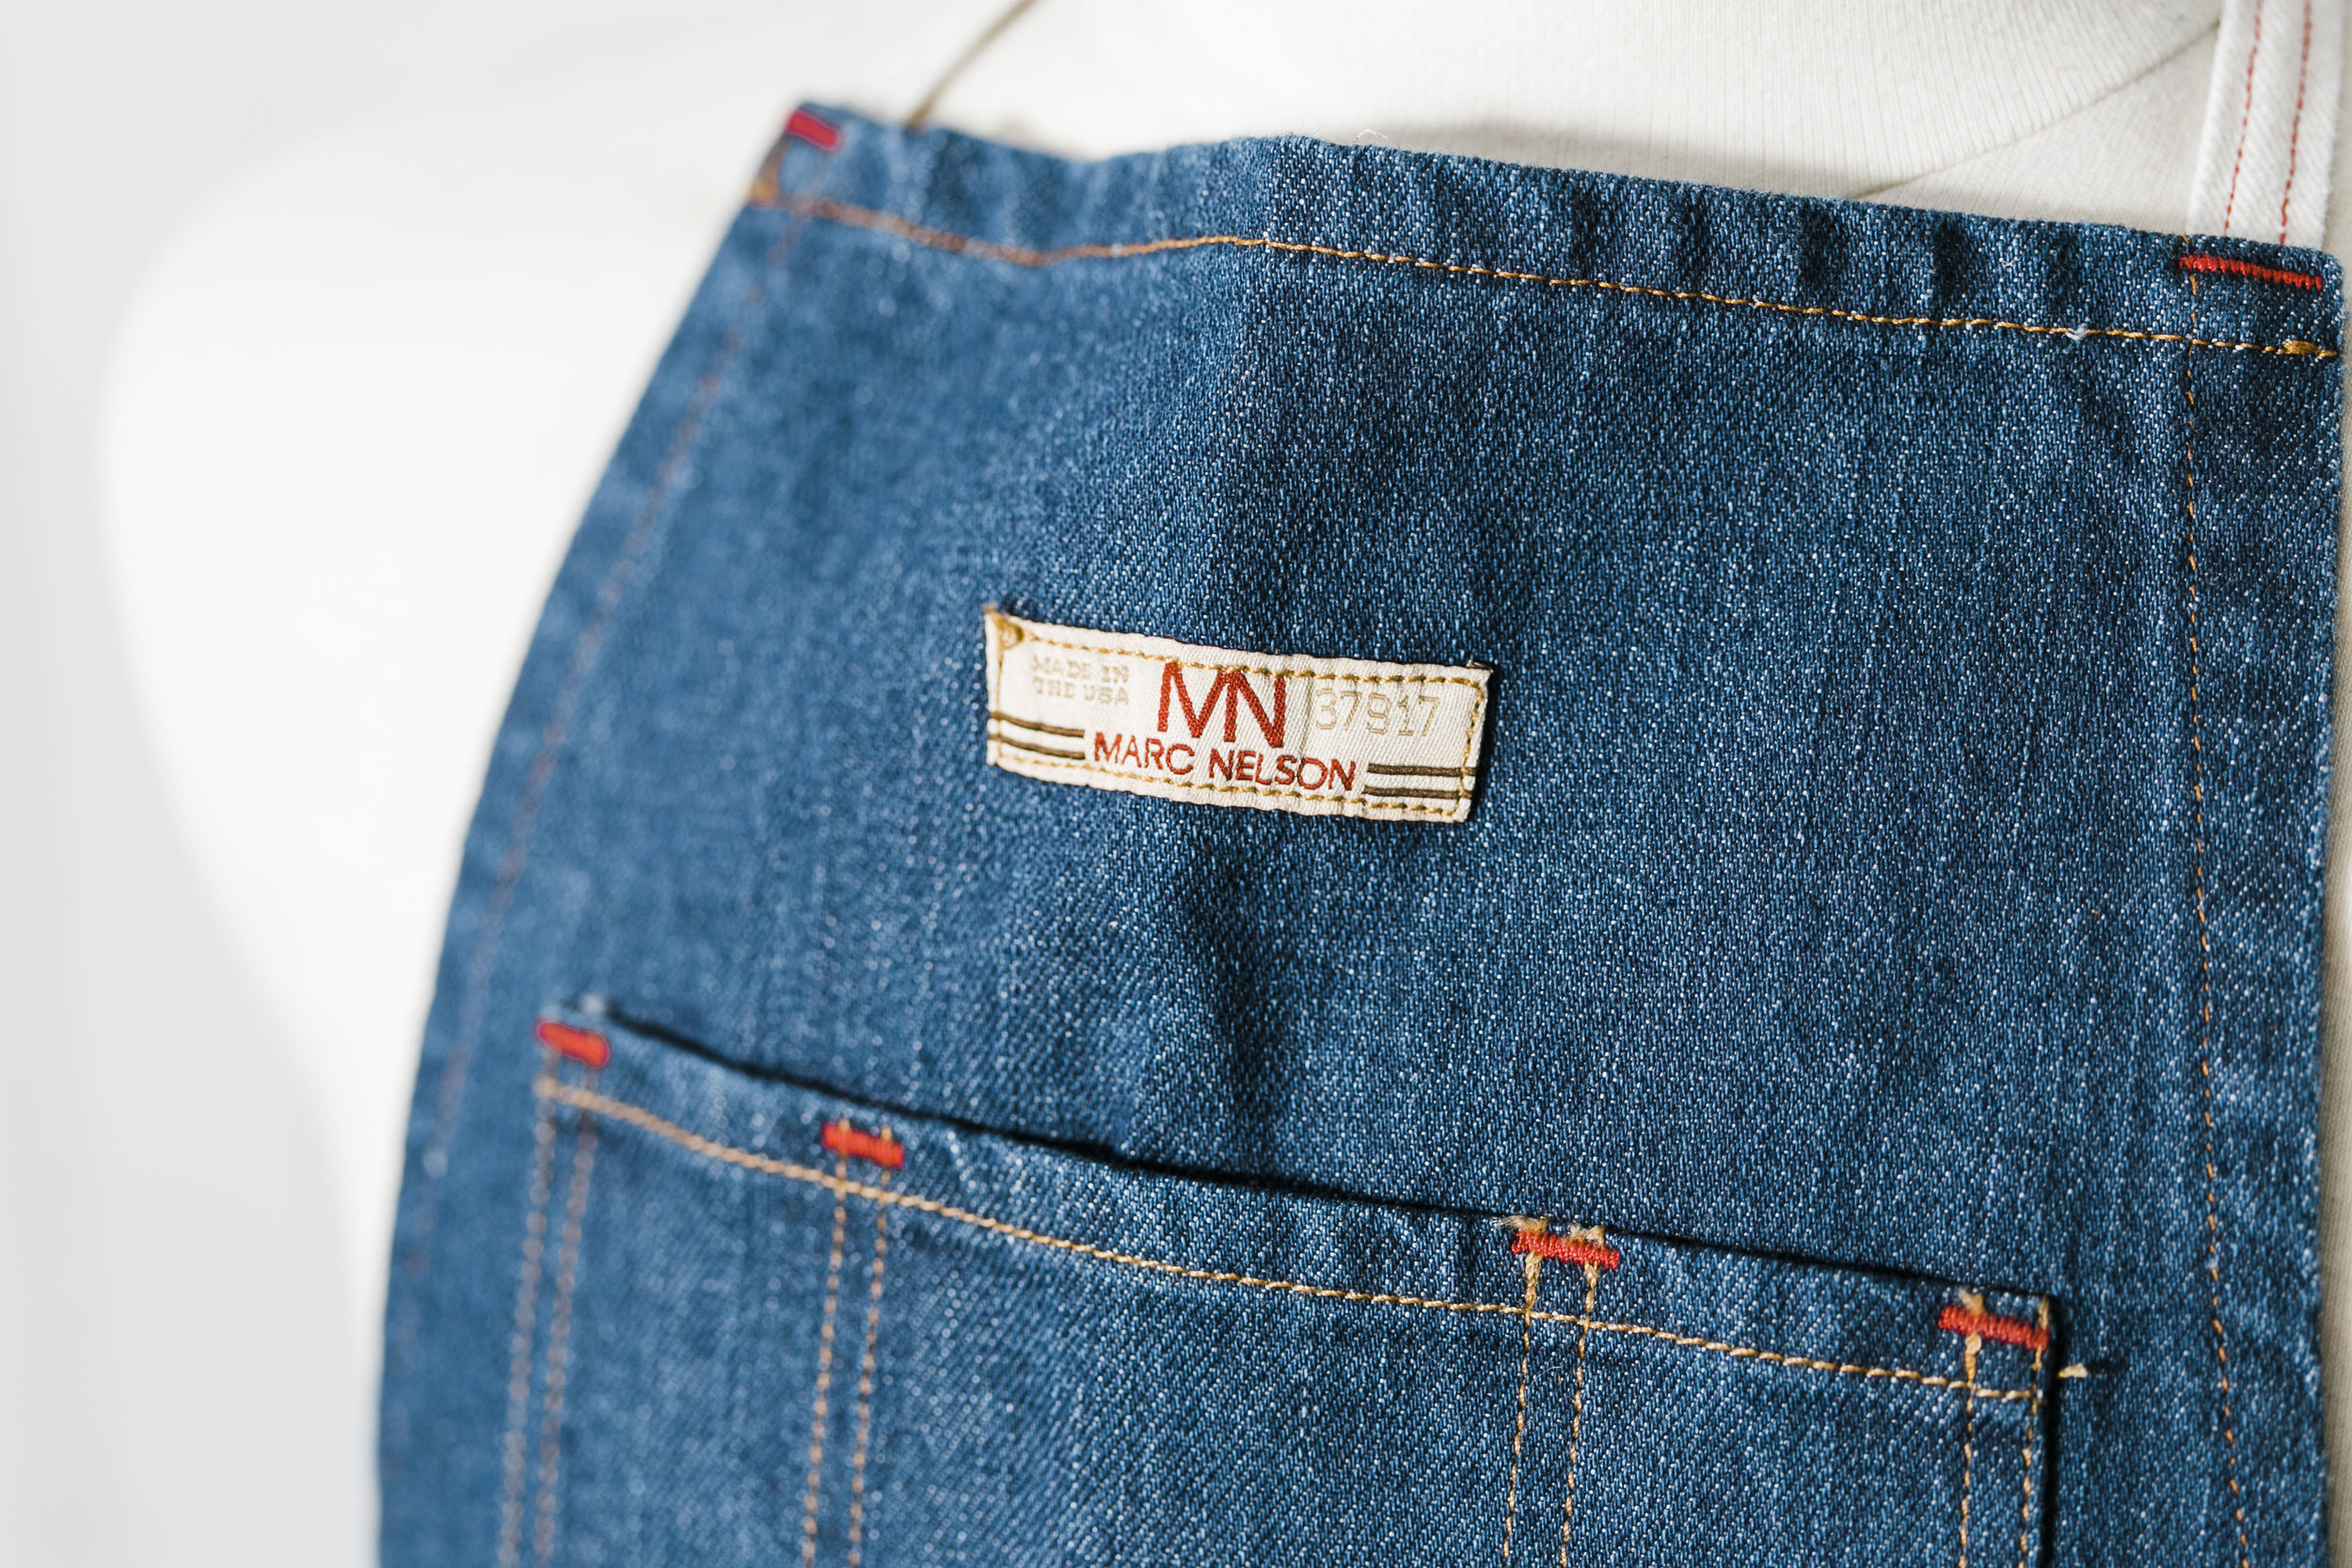 Knoxville Commercial Product Photographer Marc Nelson Denim Apron